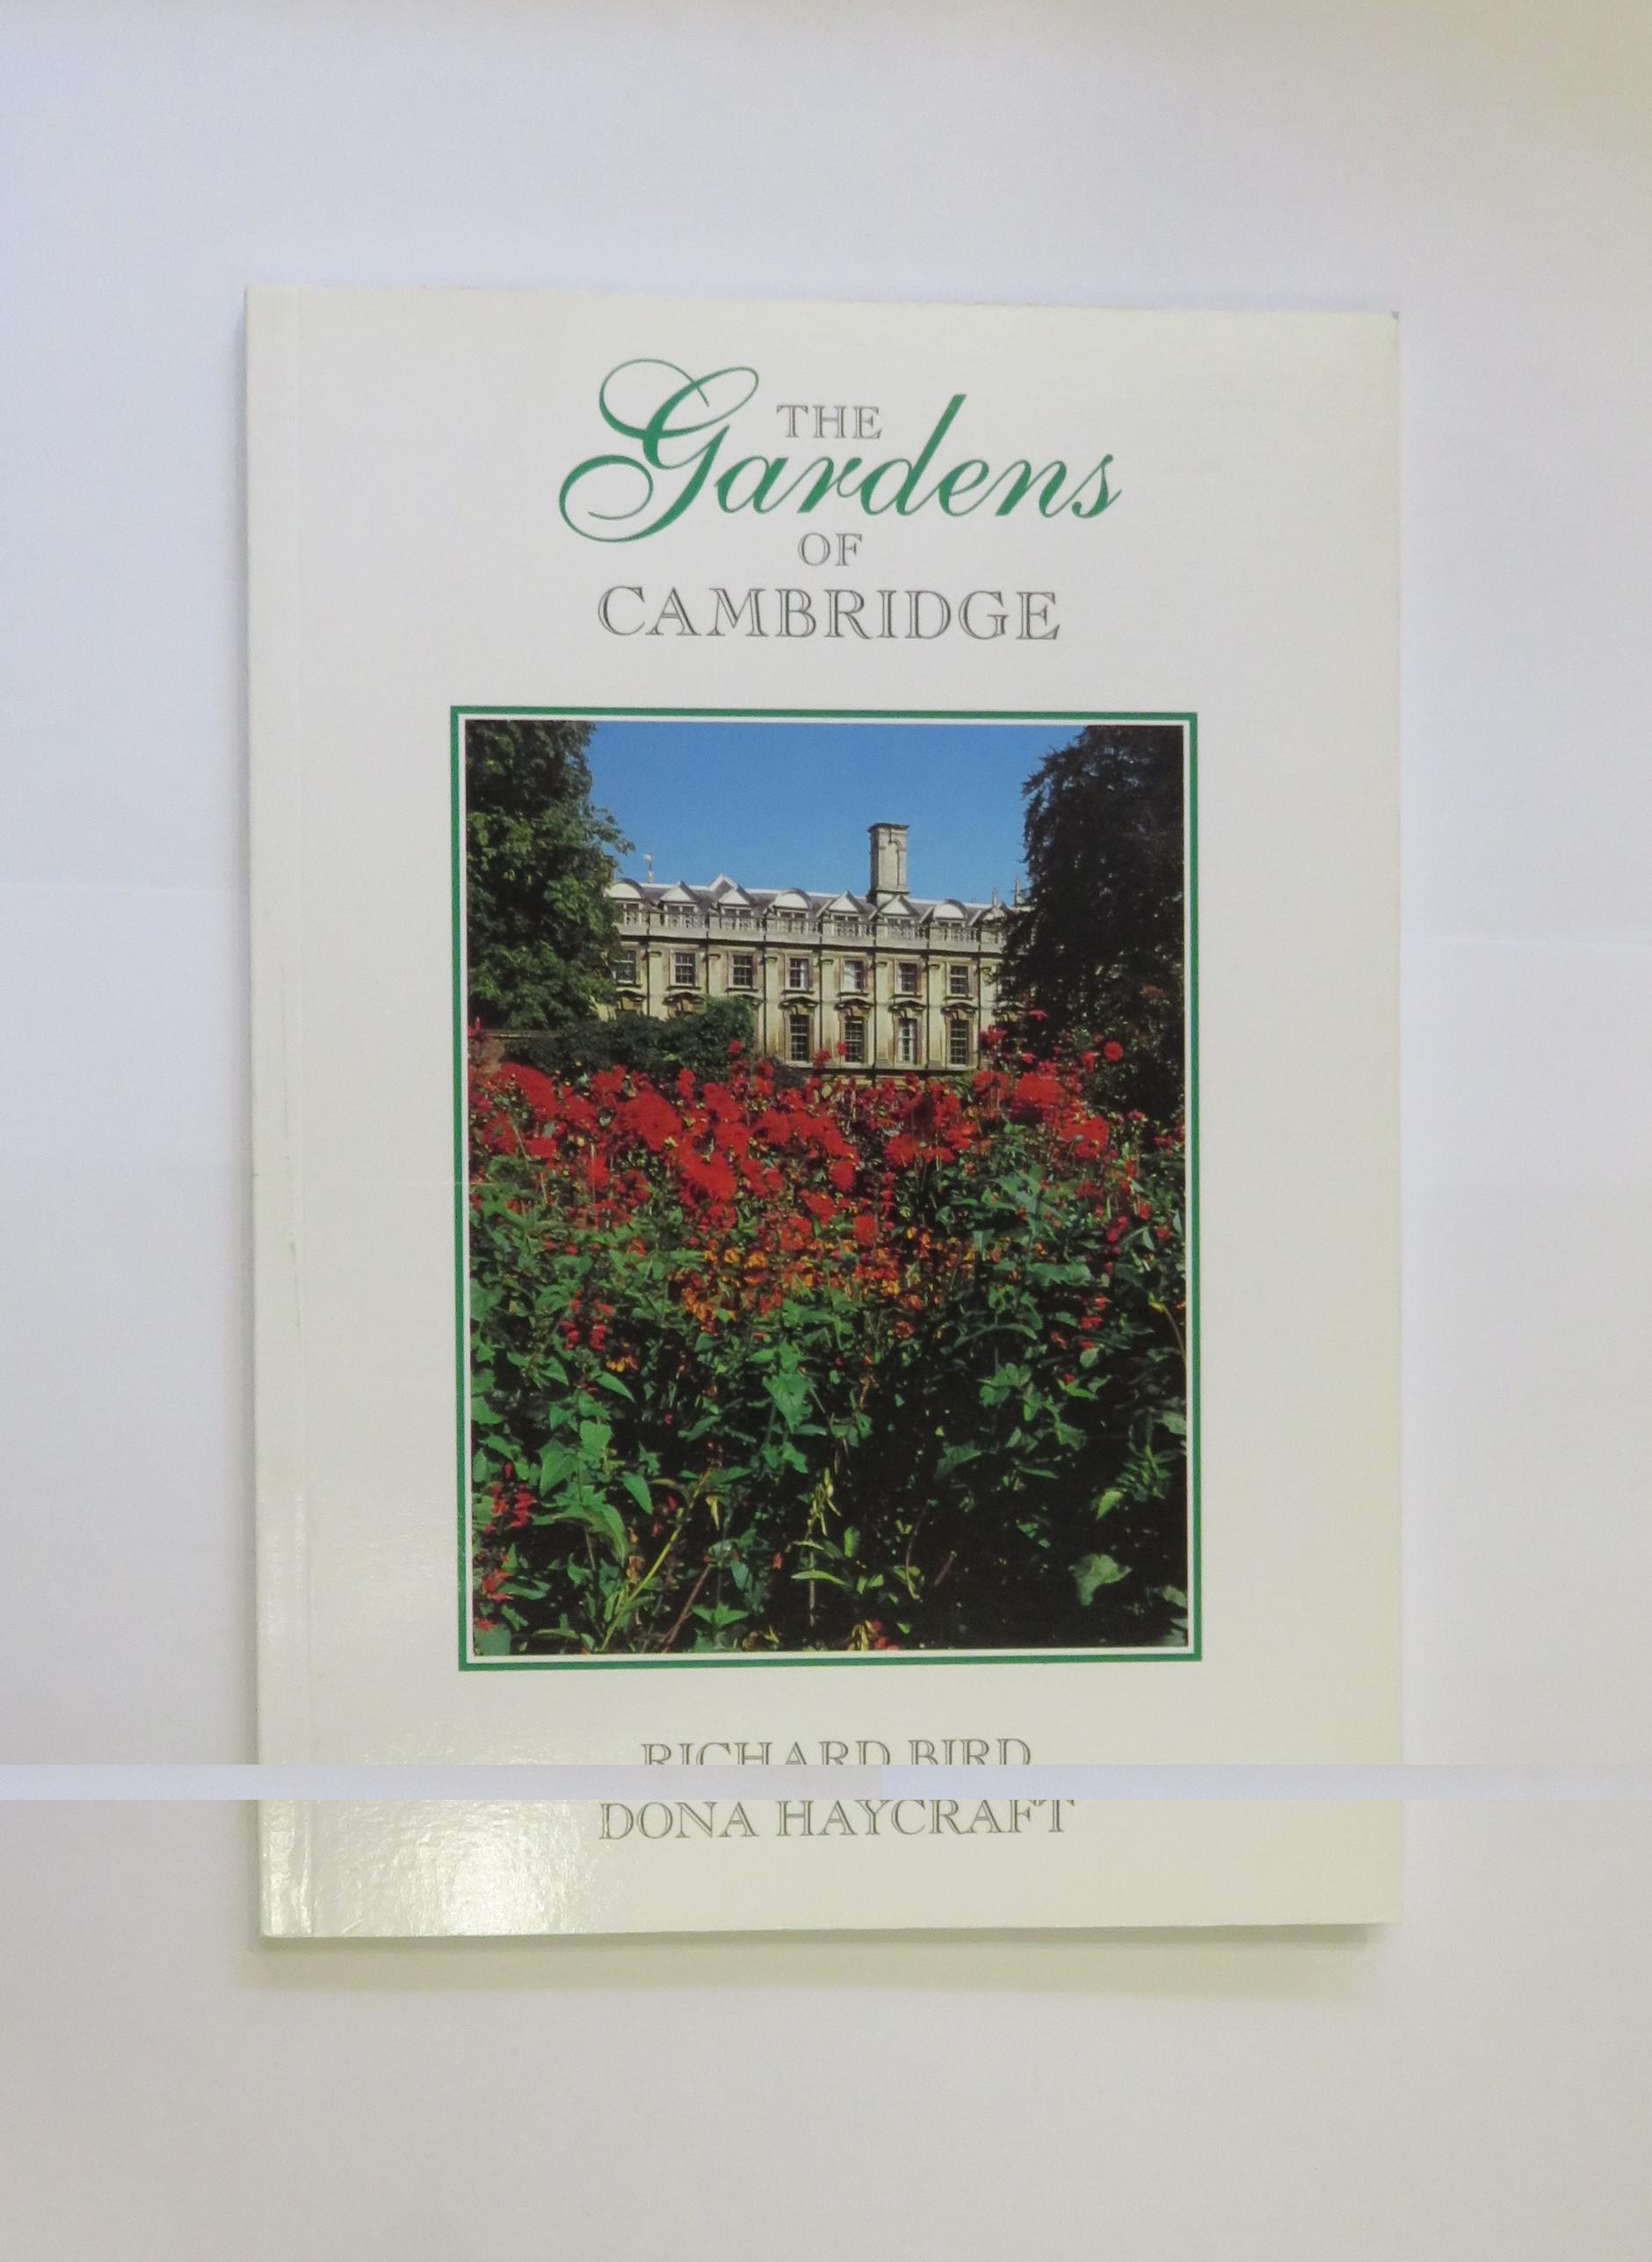 The Gardens of Cambridge